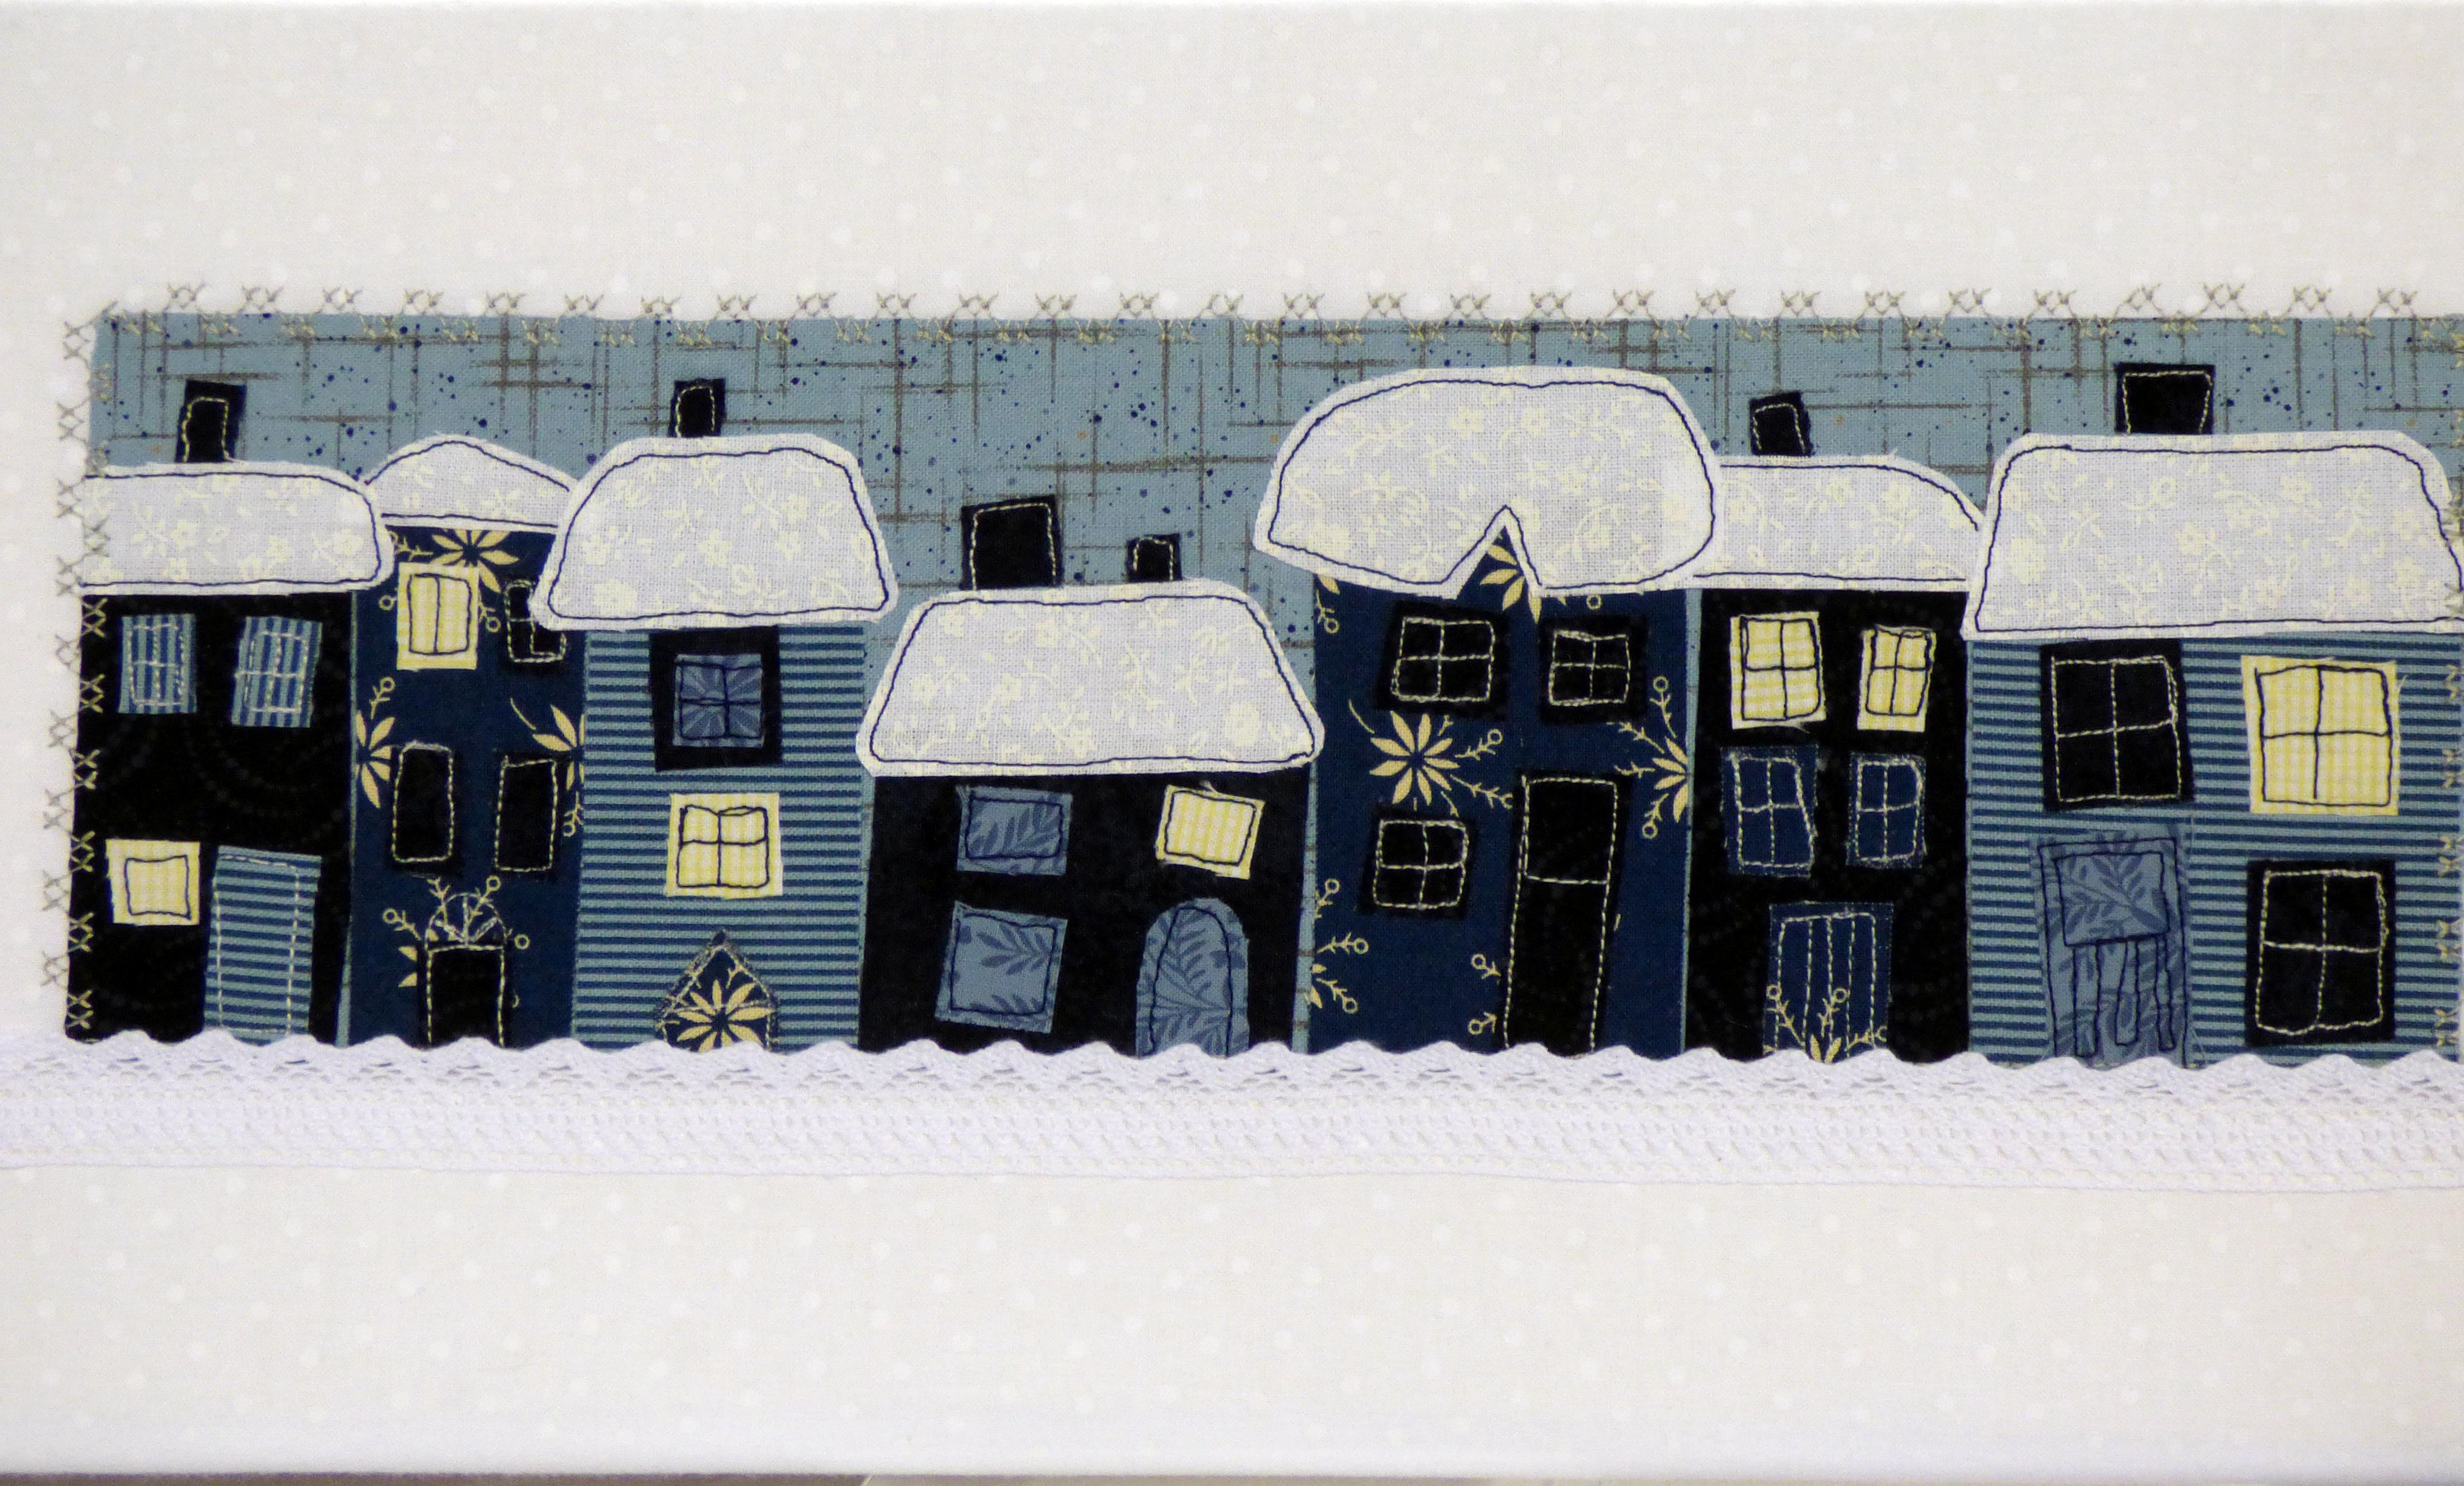 SNOWY NIGHT by Ruth Smith, N.Wales EG, raw edge free machine embroidery on vintage fabric